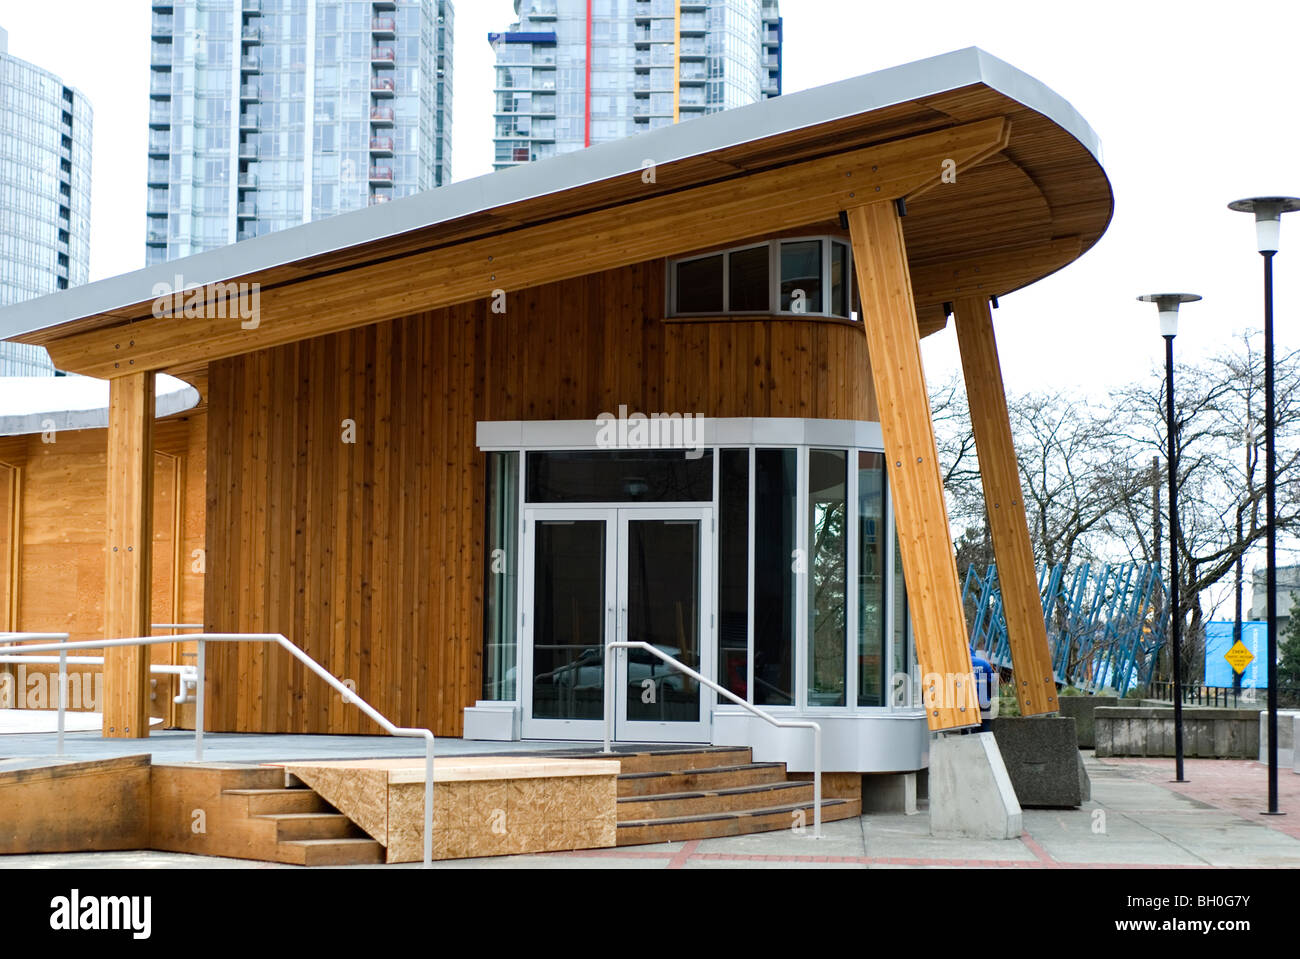 First Nations building architecture in Vancouver for 2010 Winter Olympics - Stock Image